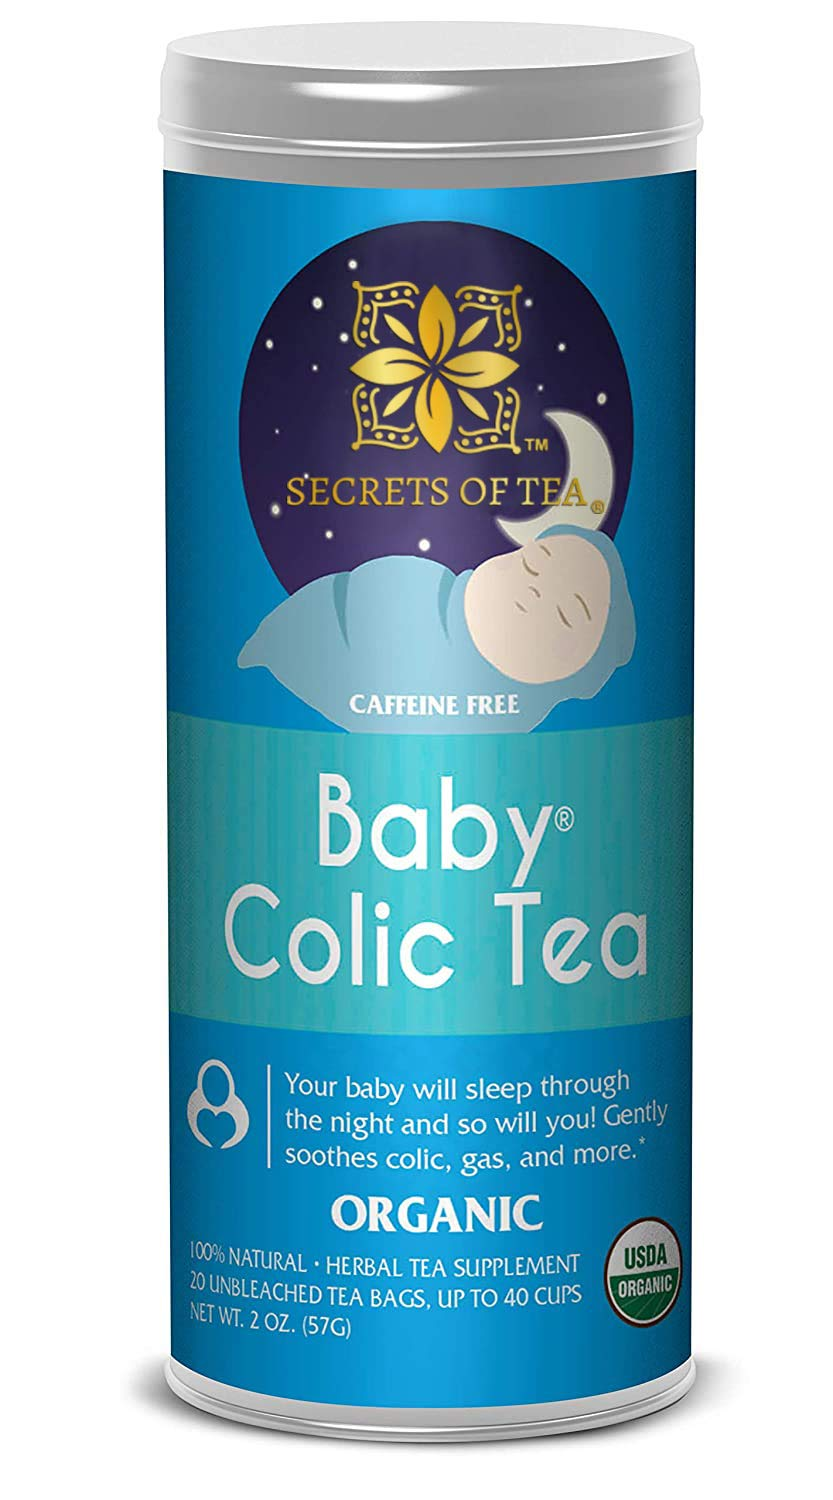 Baby Colic Tea – Digestive & Colic Prevention Herbal Tea – Soothes Acid Reflux, Newborn Tummy Digestion, Promotes Better Sleep – Calming, Safe & Healthy Colic Relief Tea – 20 Count: Baby